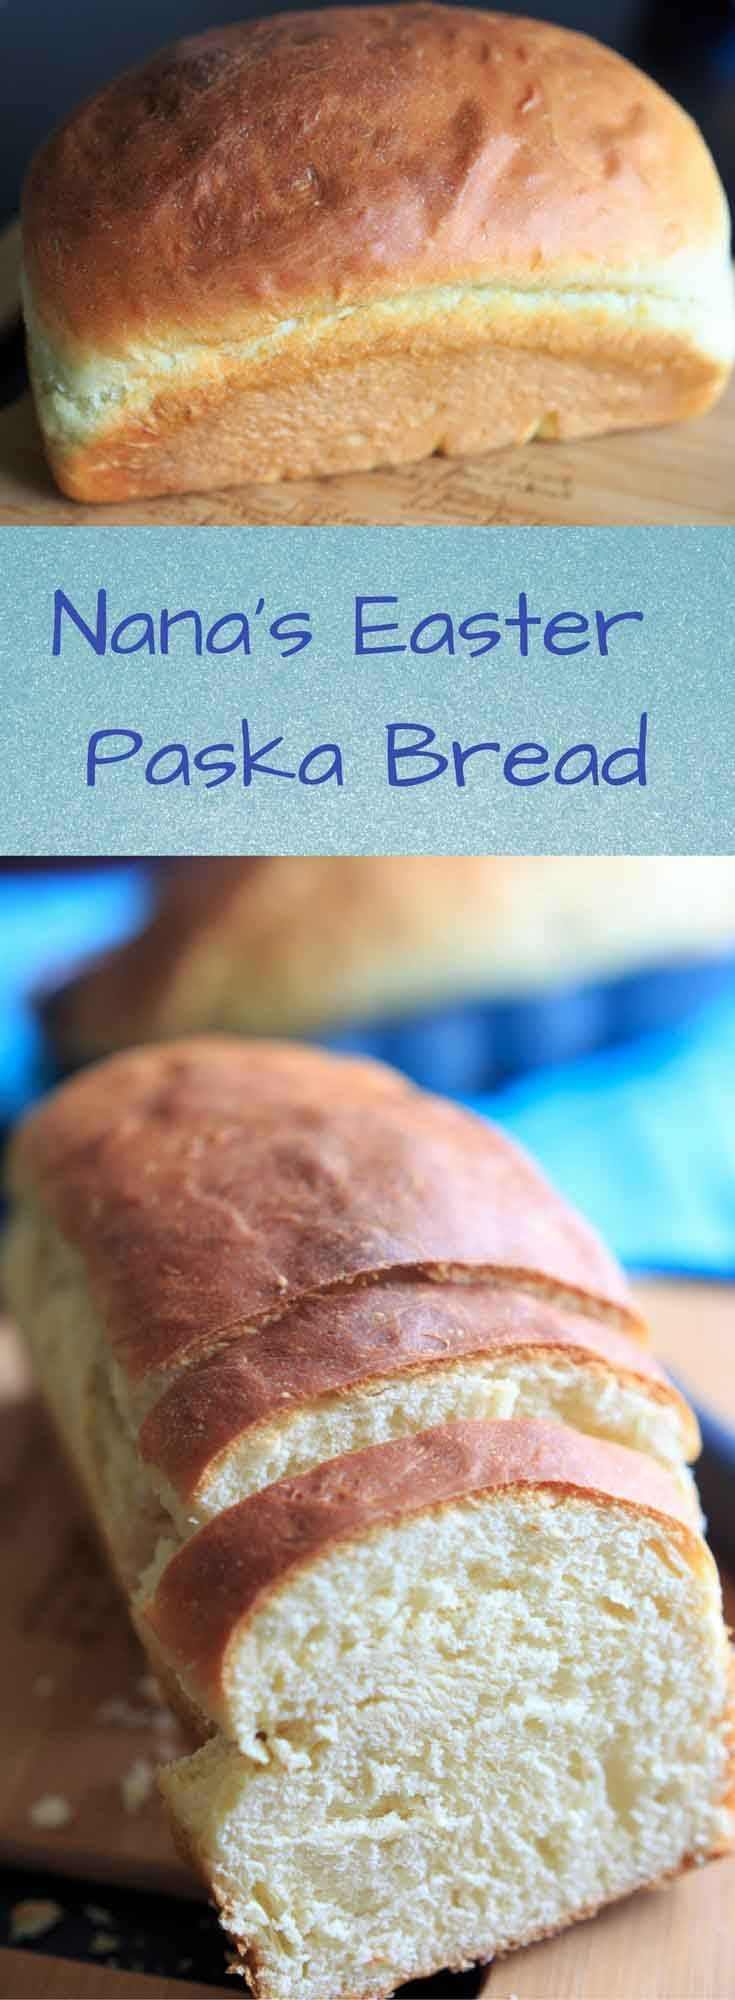 Easter Paska Bread - My Nana's recipe for this Eastern European egg bread. I look forward to making this all year!